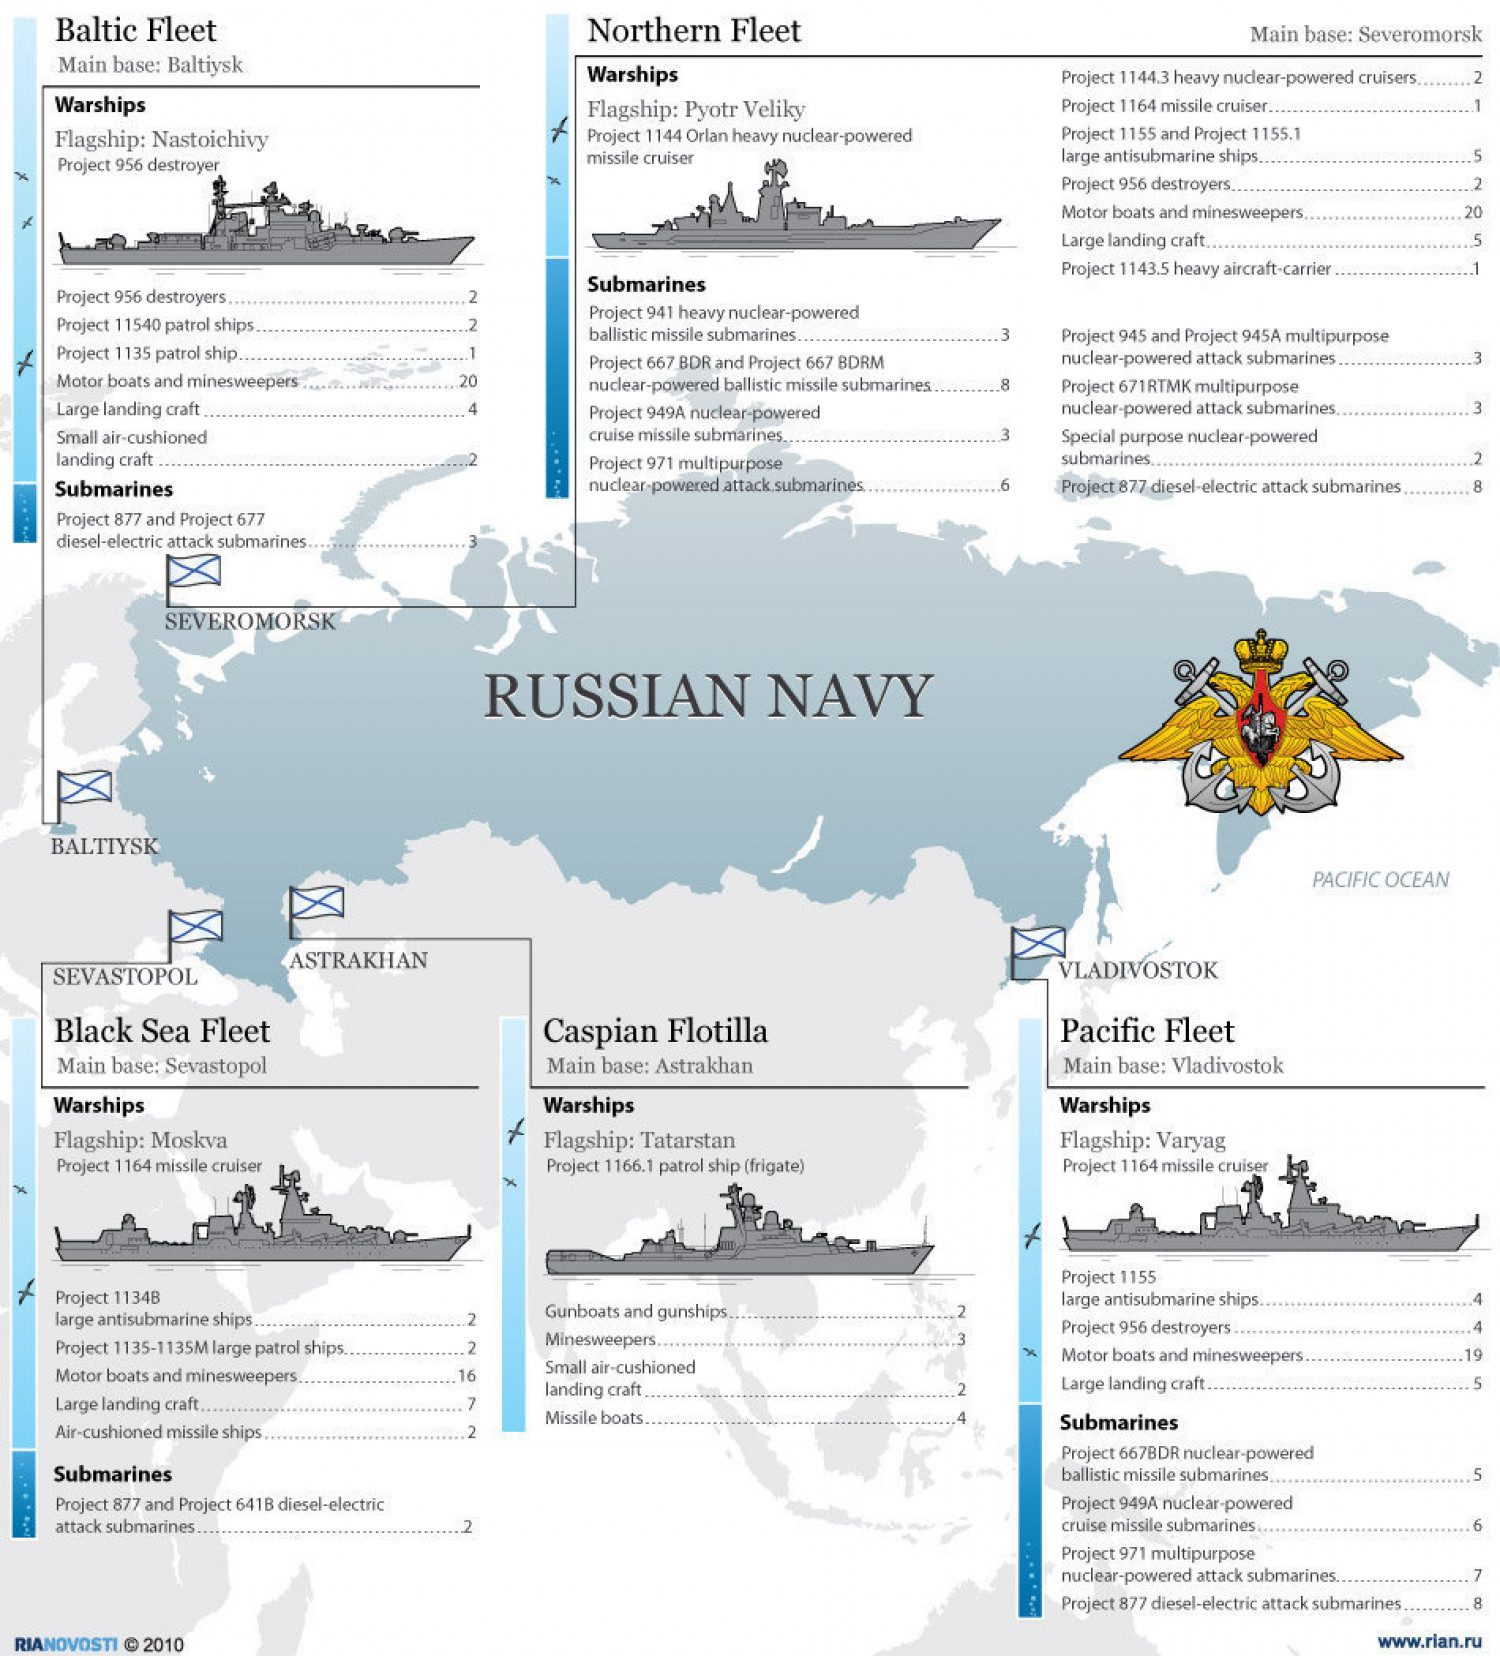 Russian Navy Infographic